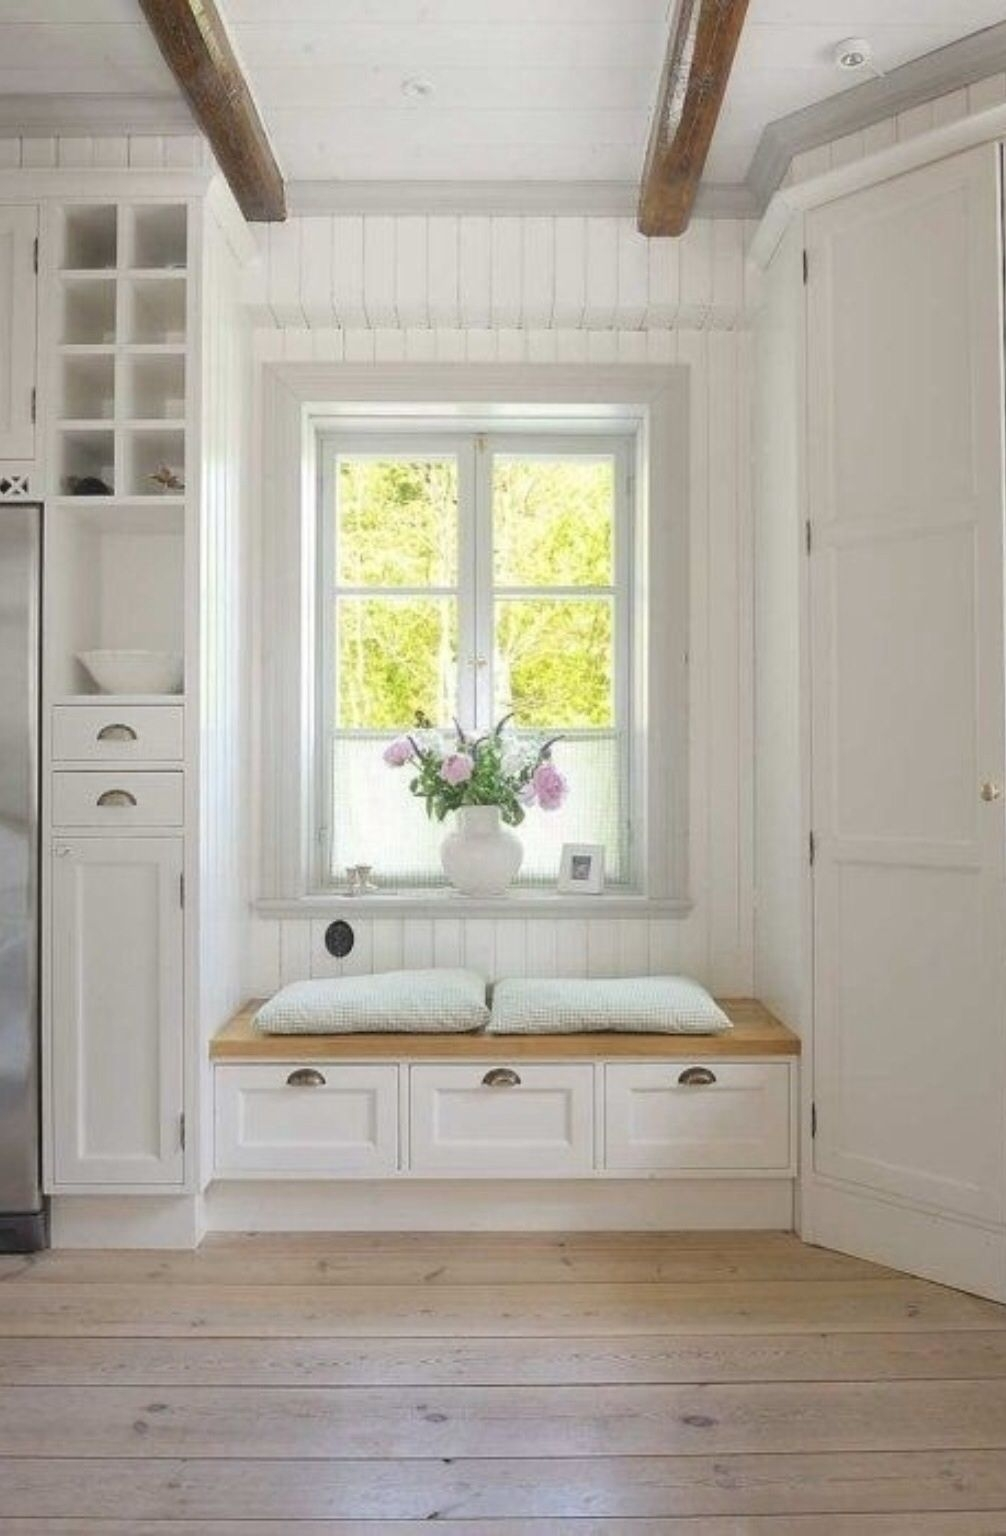 Small Kitchen Bench Ideas On Foter